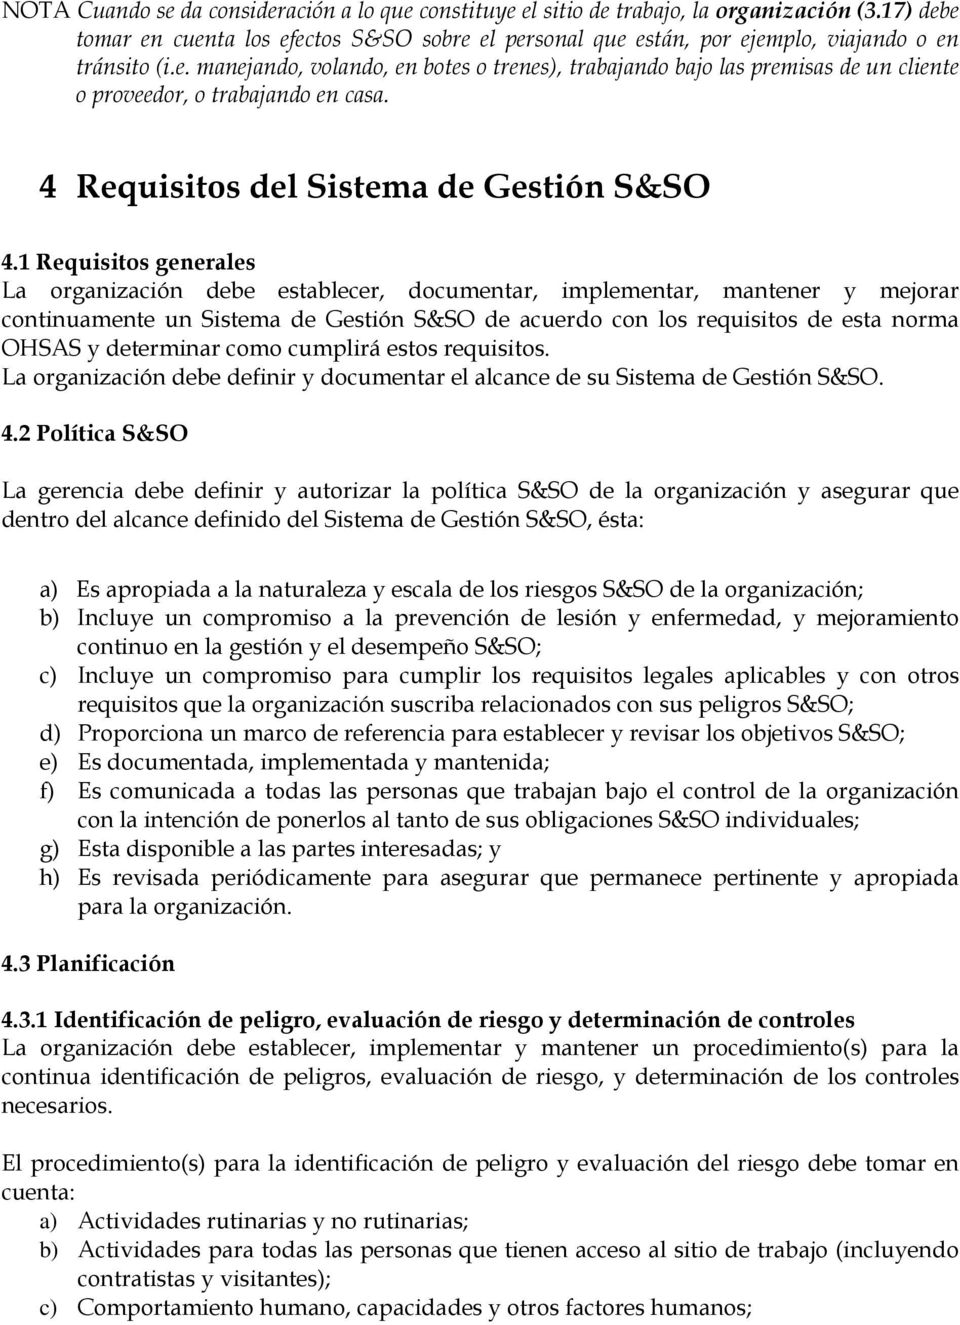 4 Requisitos del Sistema de Gestión S&SO 4.